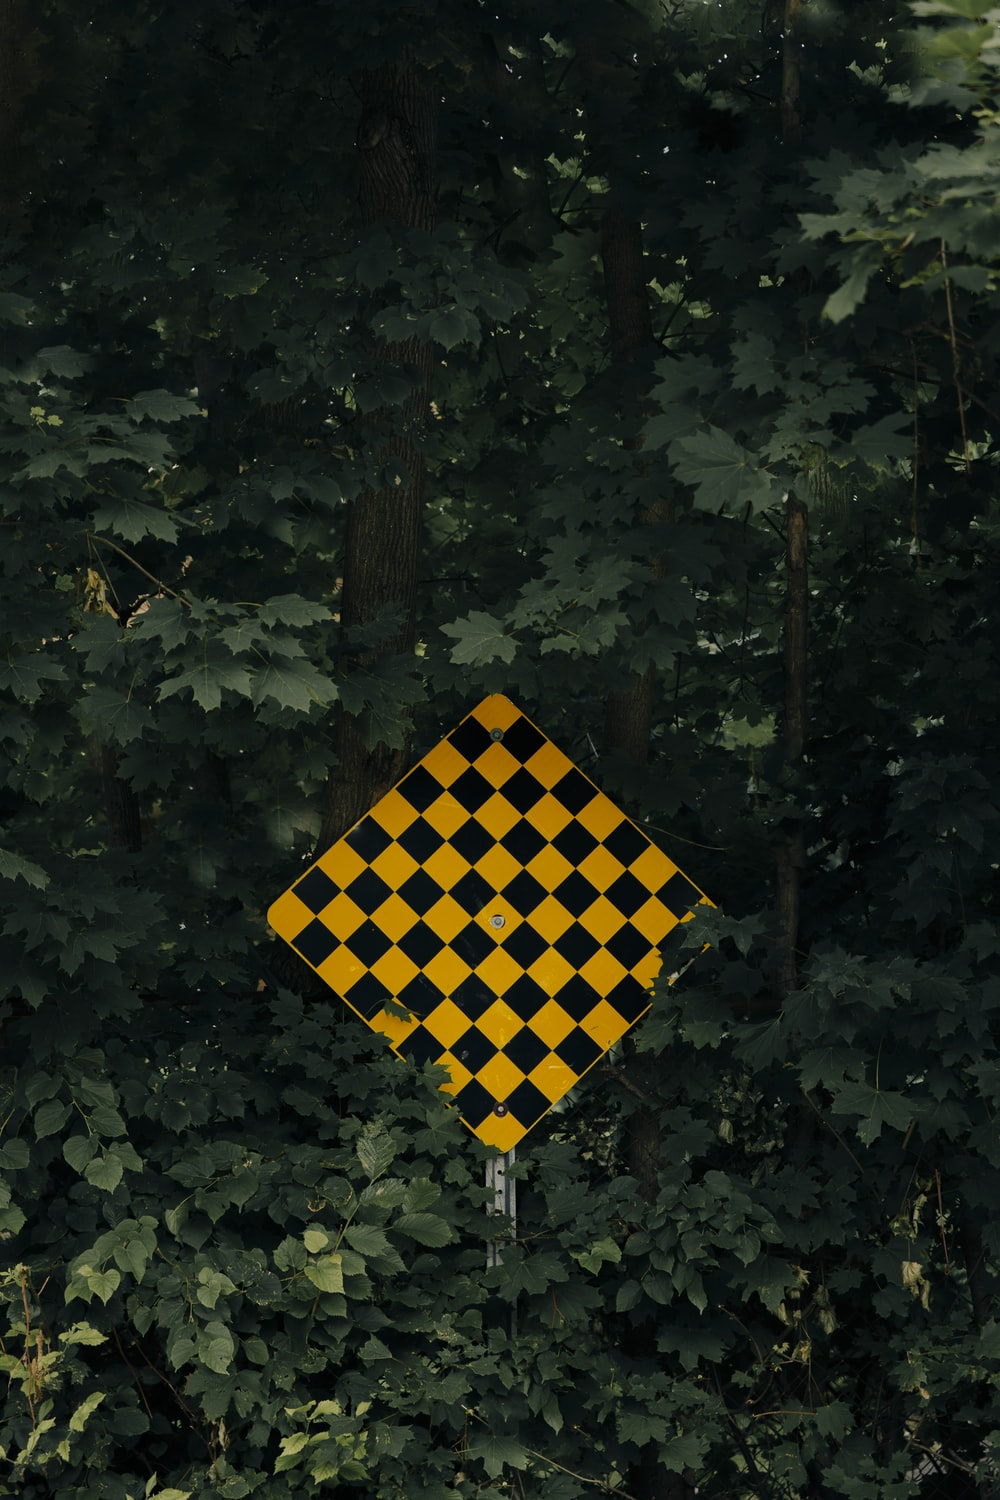 yellow and black checkered flag on green leaves